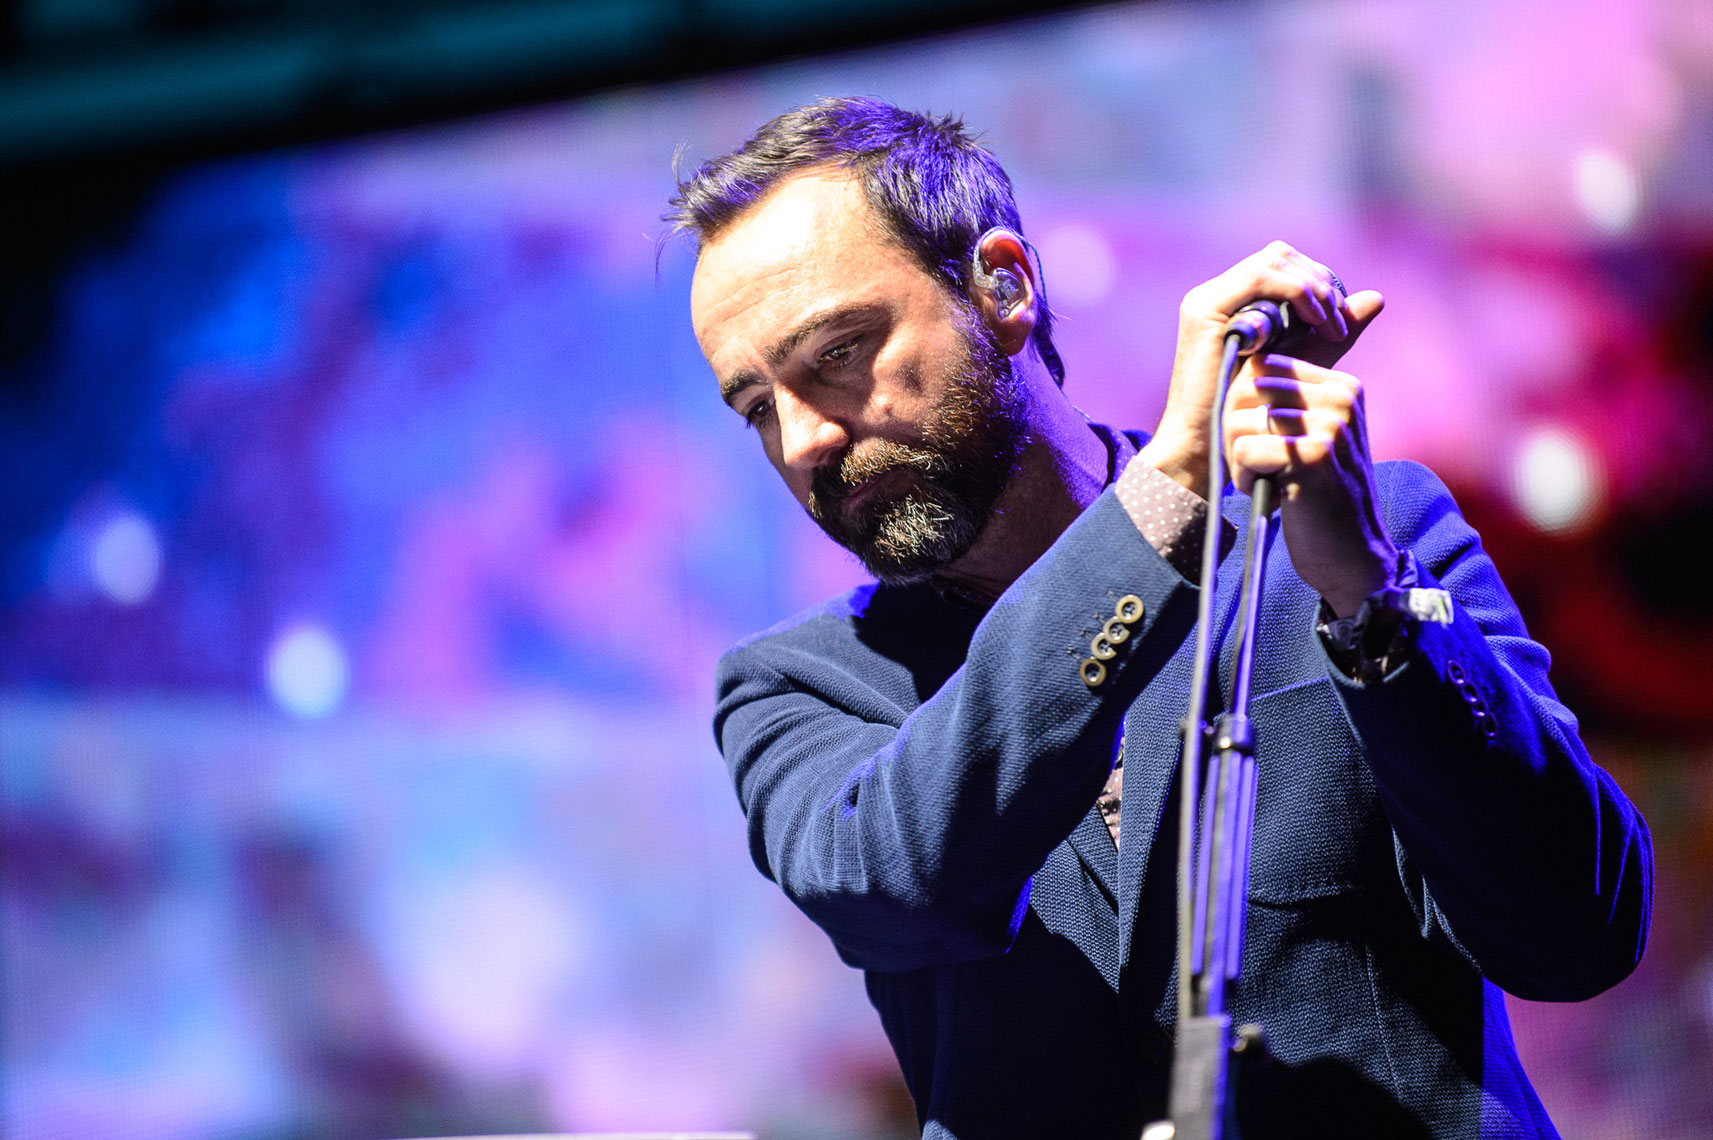 Broken Bells at Coachella 2014